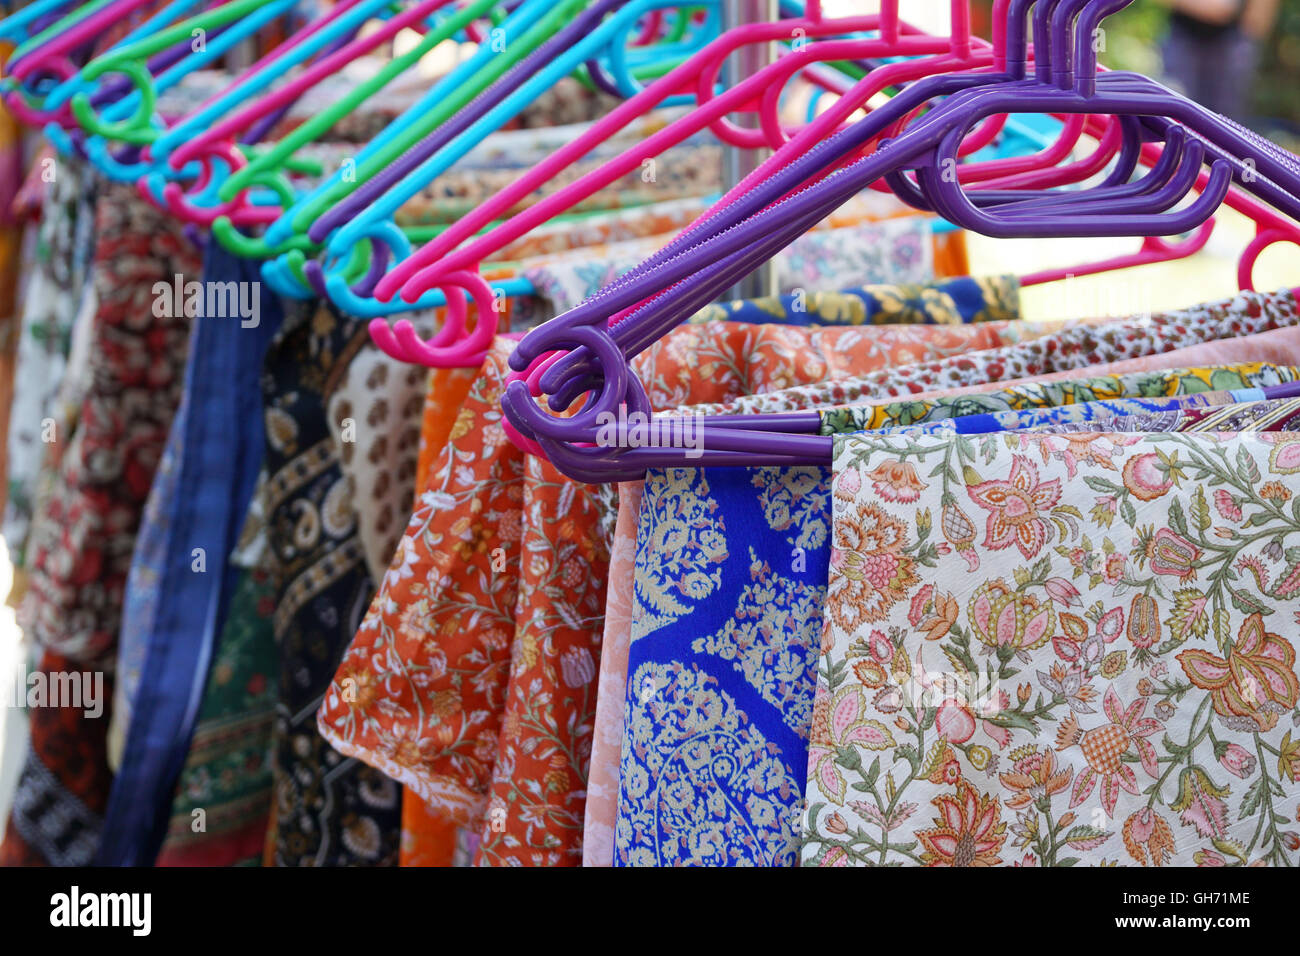 floral pattern clothes on hangers - Stock Image